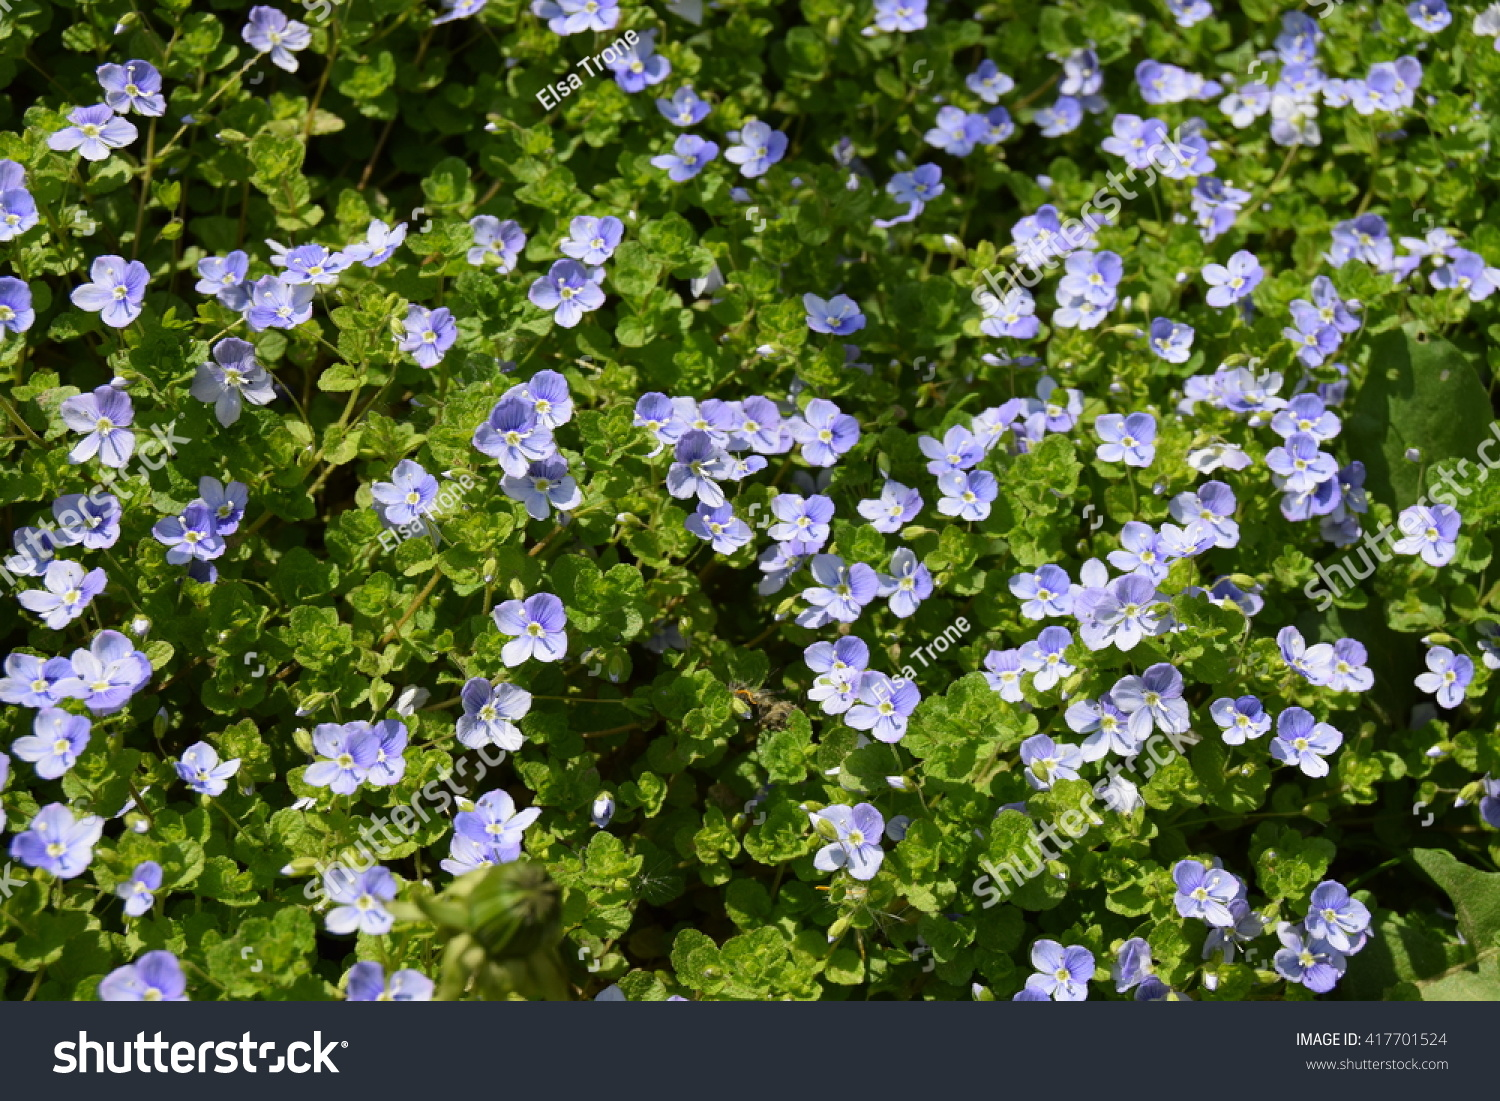 Small blue flowers ground cover stock photo edit now 417701524 small blue flowers of ground cover izmirmasajfo